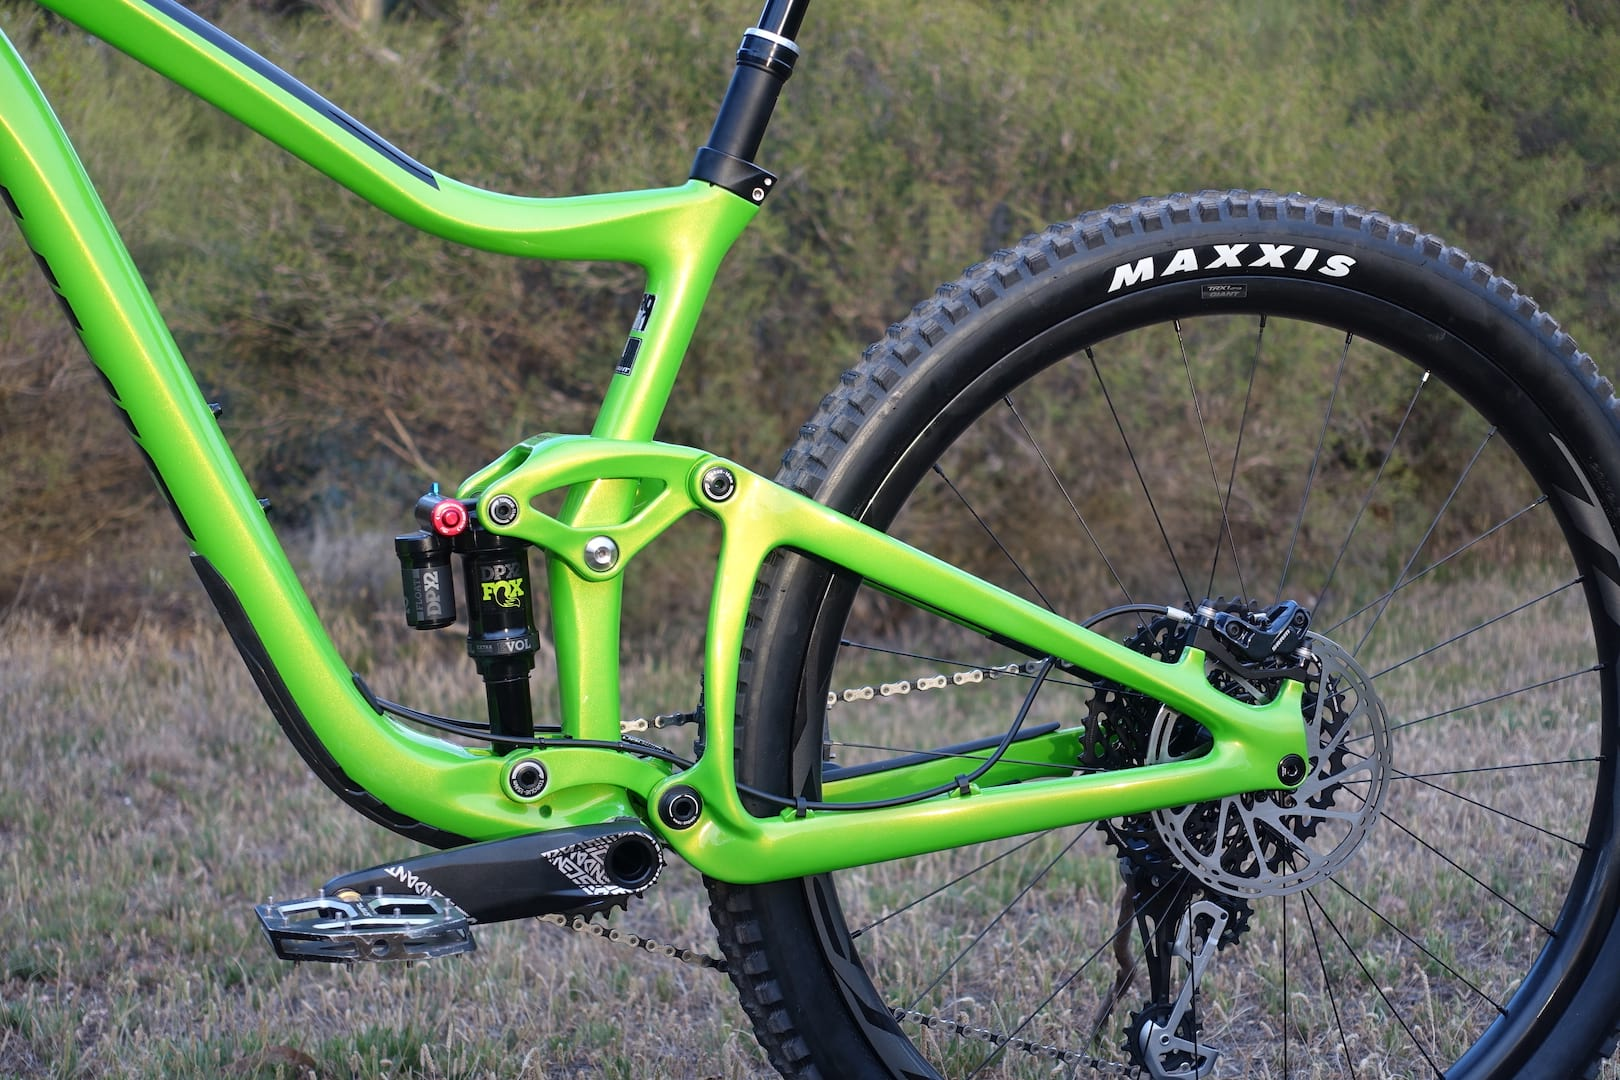 Is This 2019 Trance The Most Progressive Giant Mountain Bike